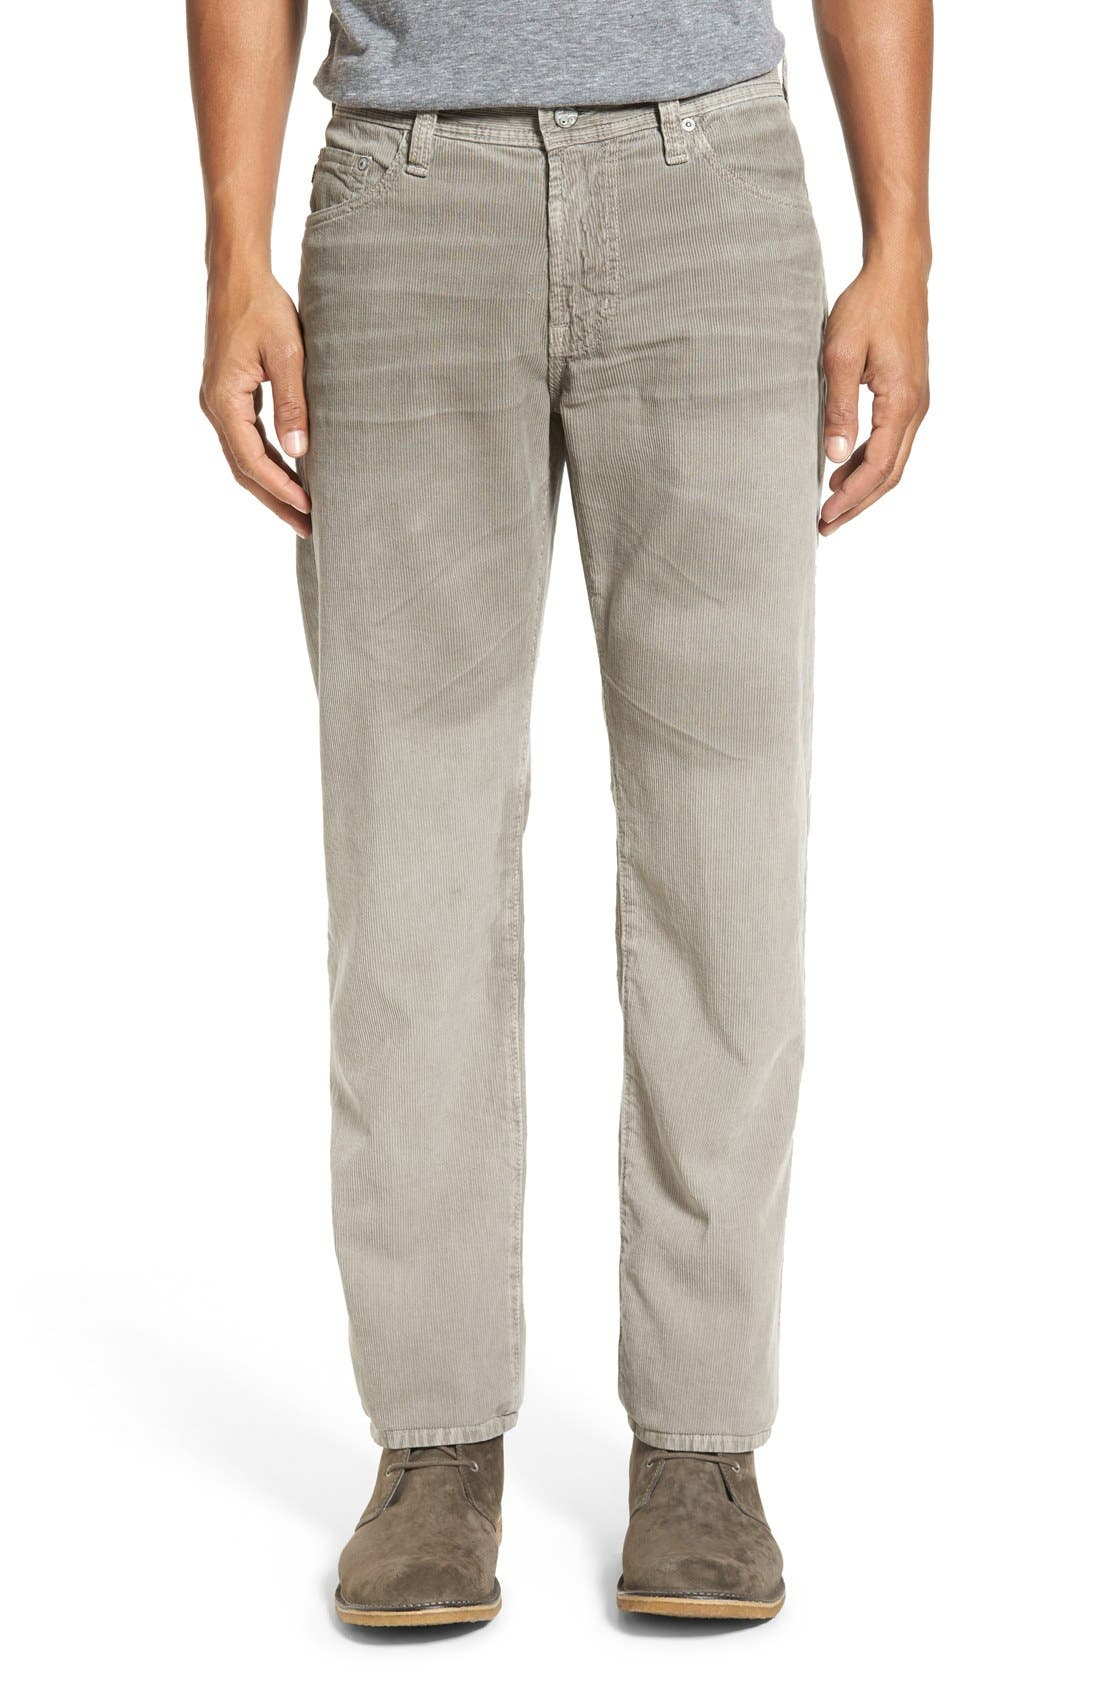 'Graduate' Tailored Straight Leg Corduroy Pants,                             Main thumbnail 11, color,